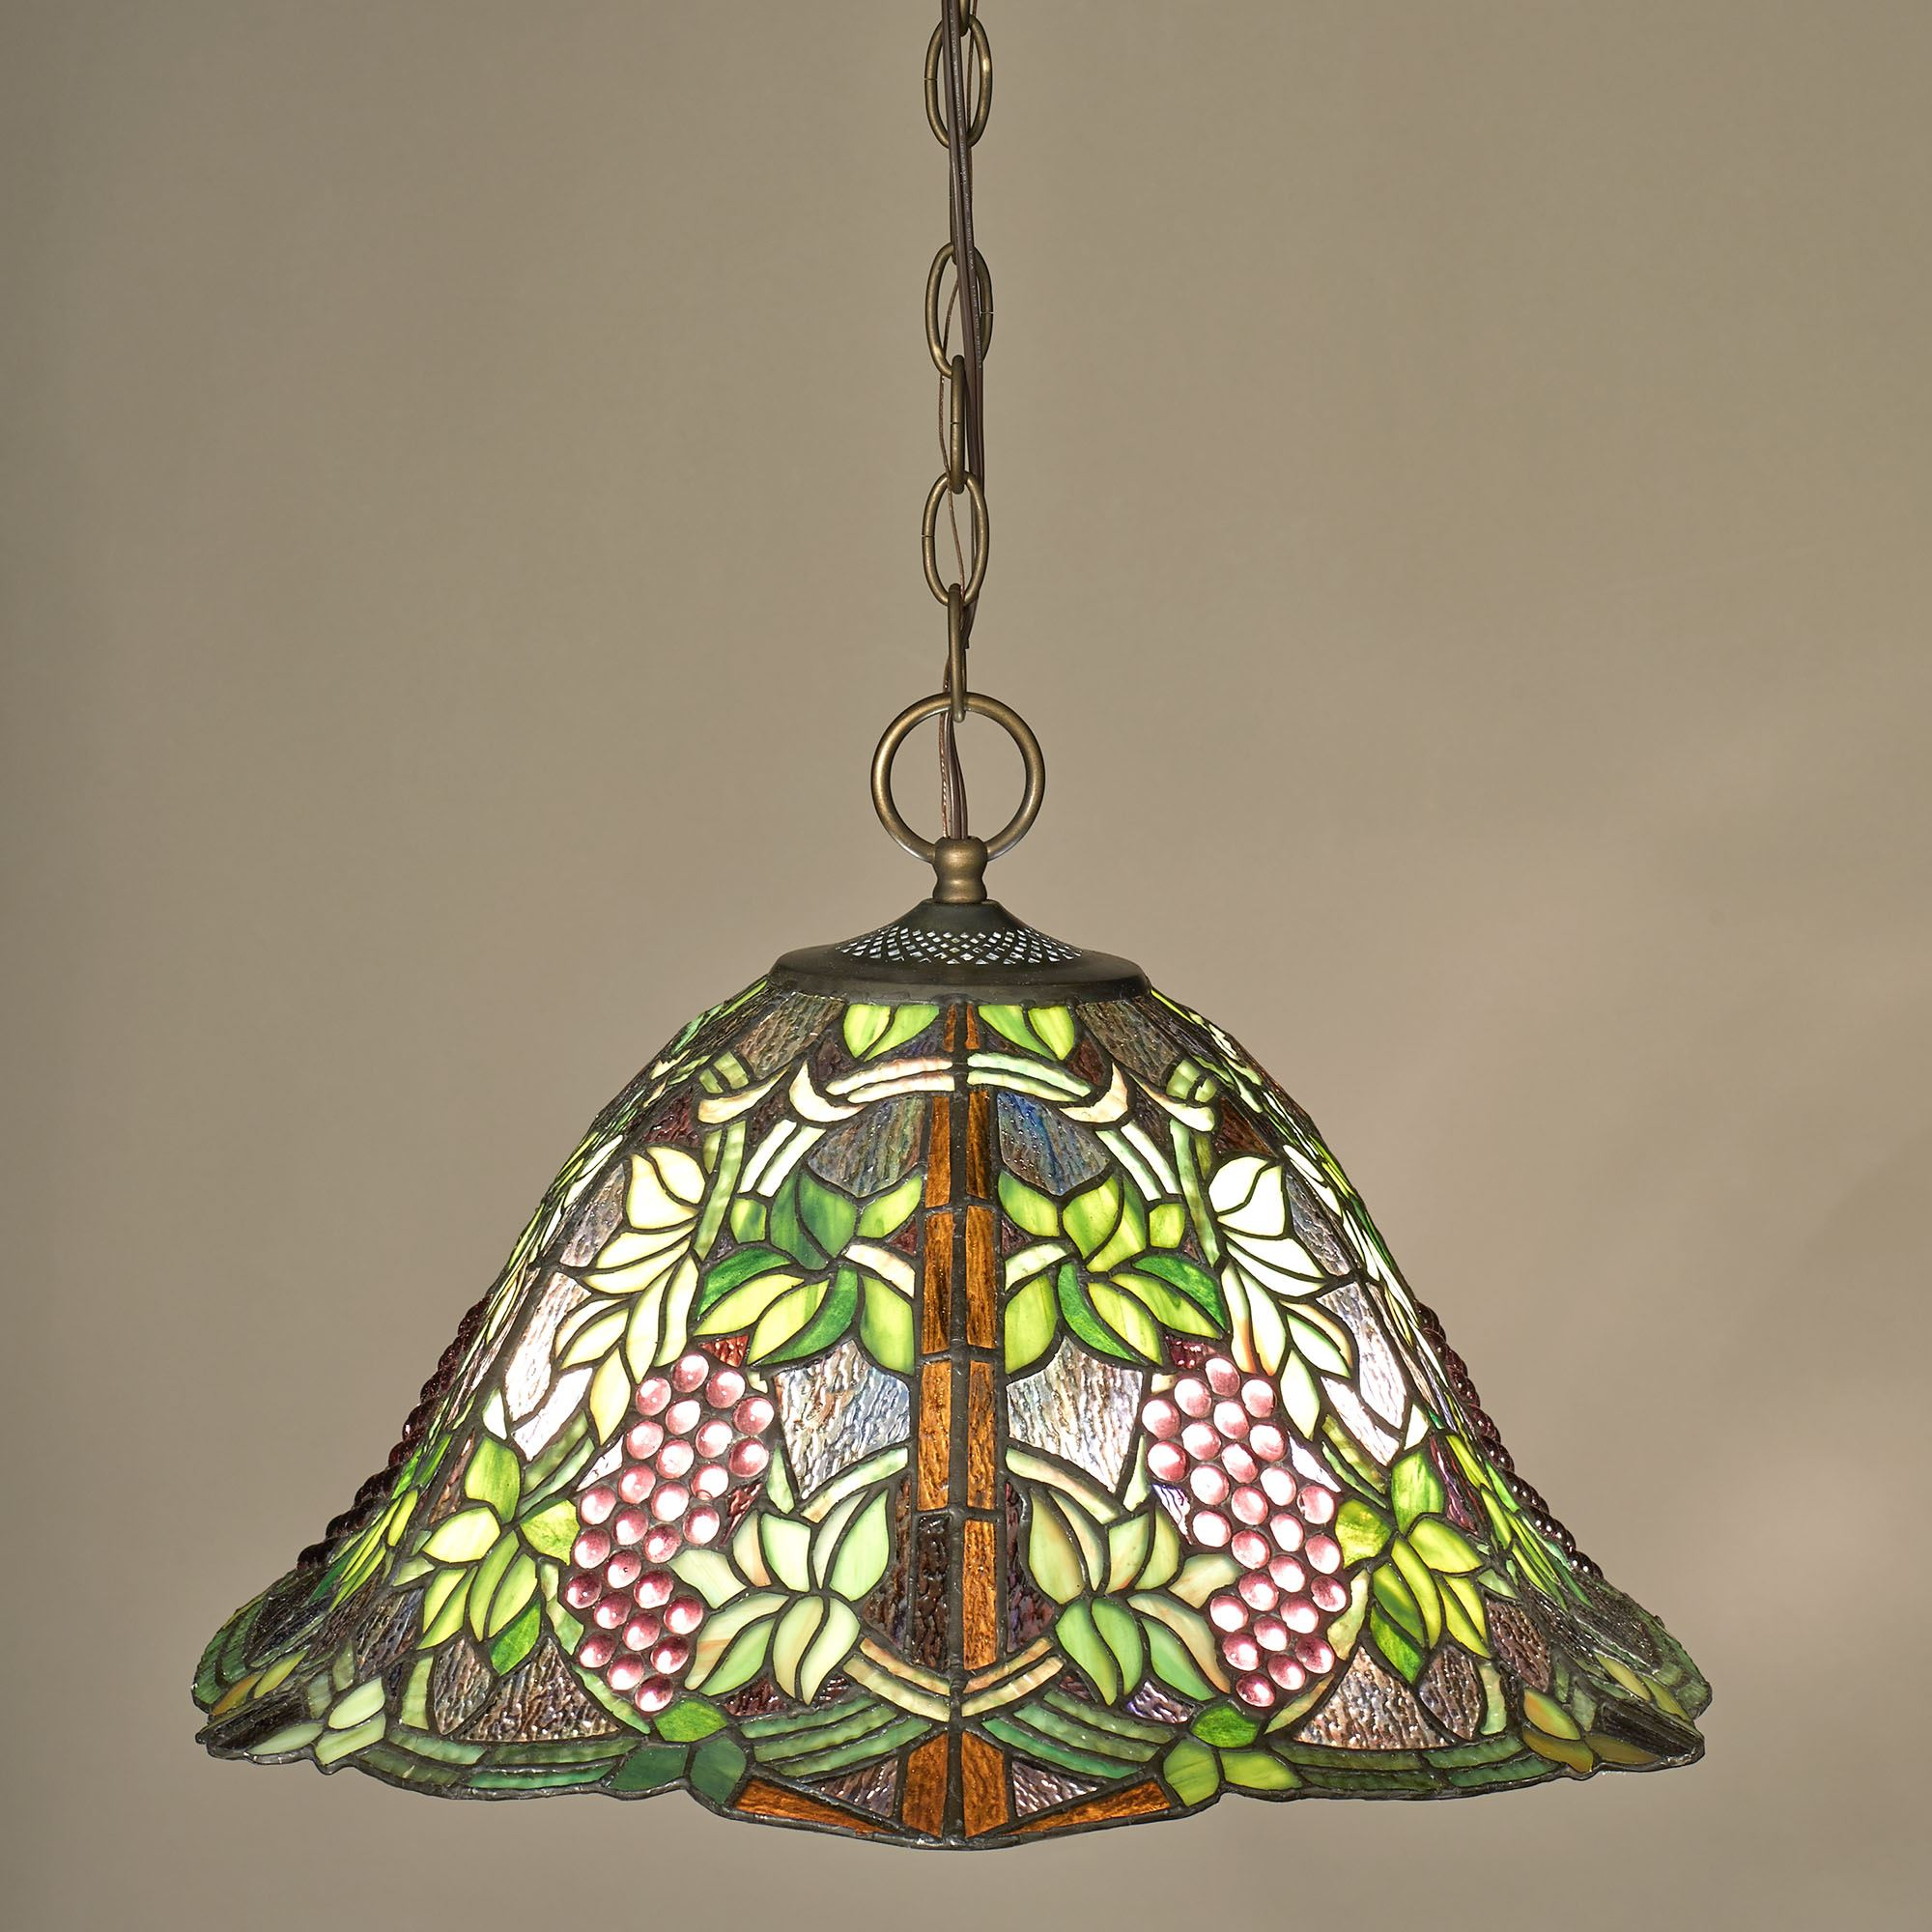 lamp tongue all contact pendant about art info light glass stained deco vintage